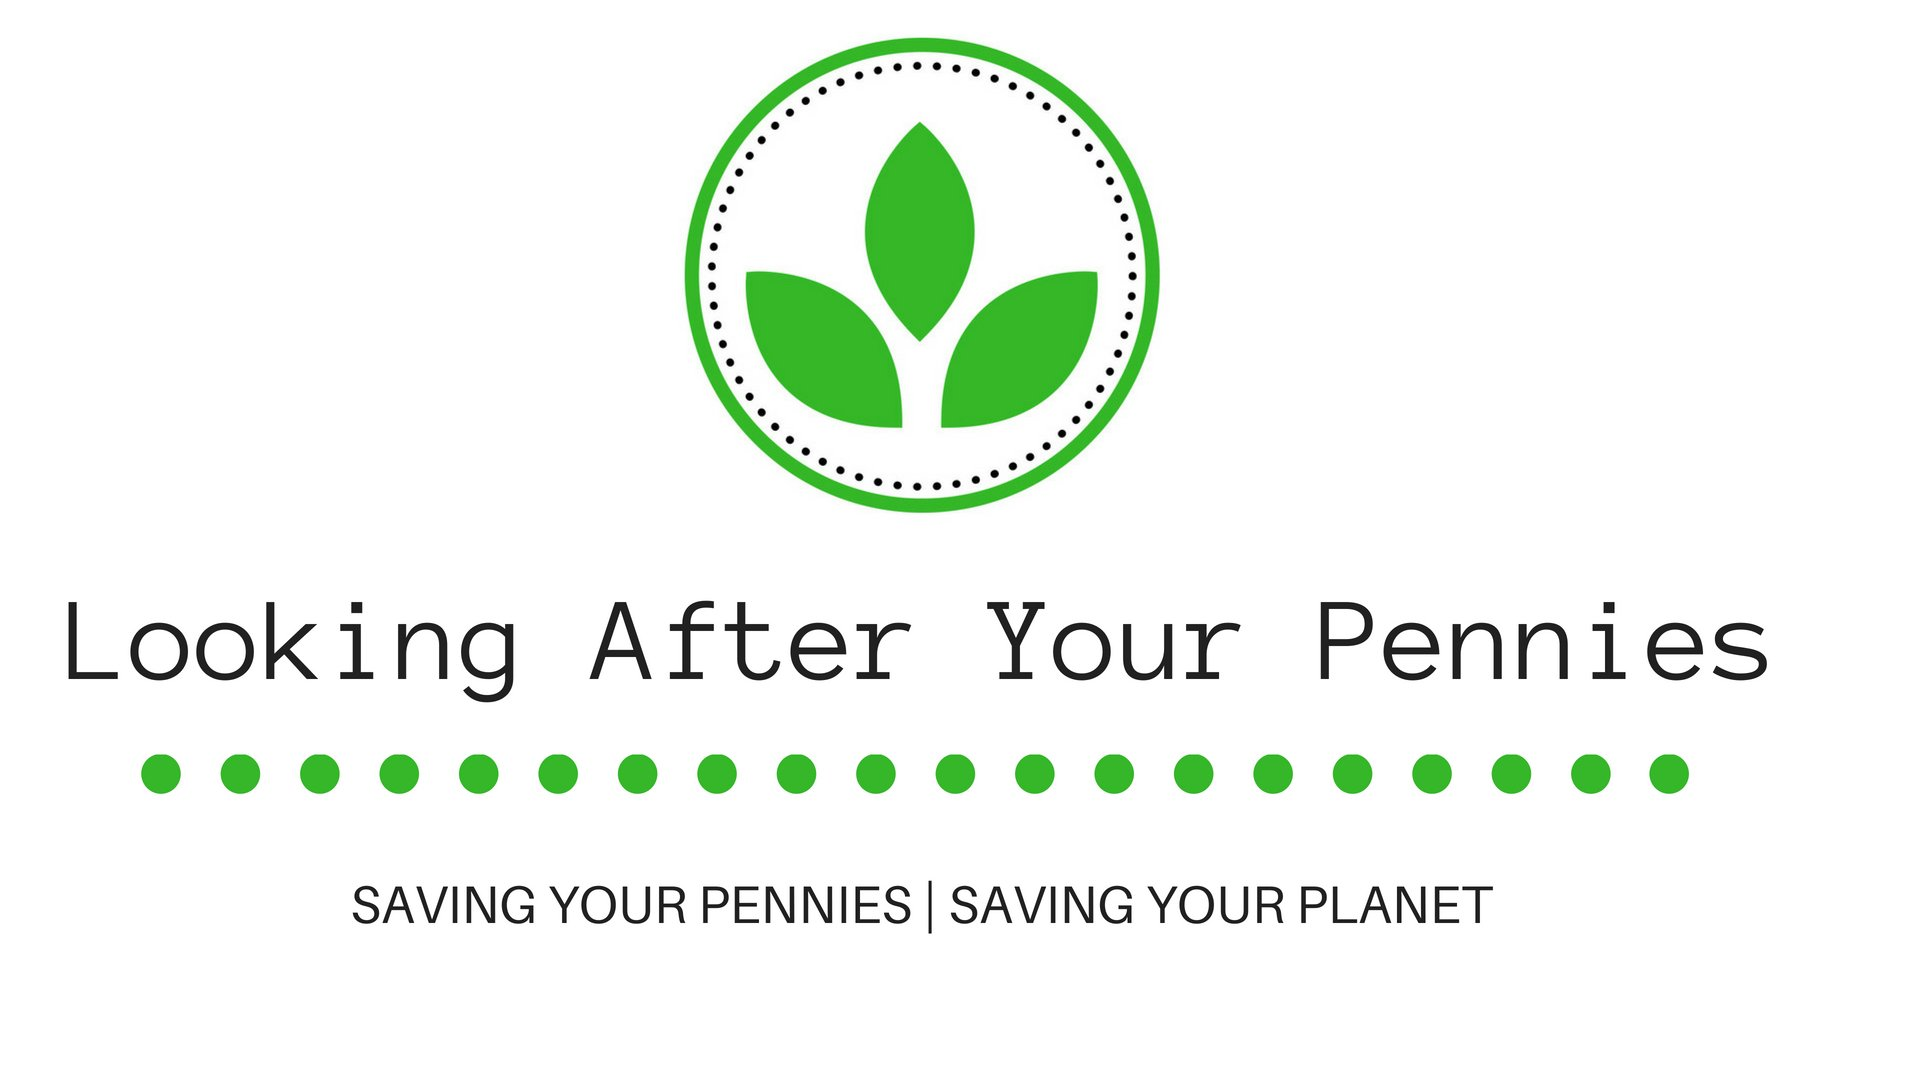 Looking After Your Pennies